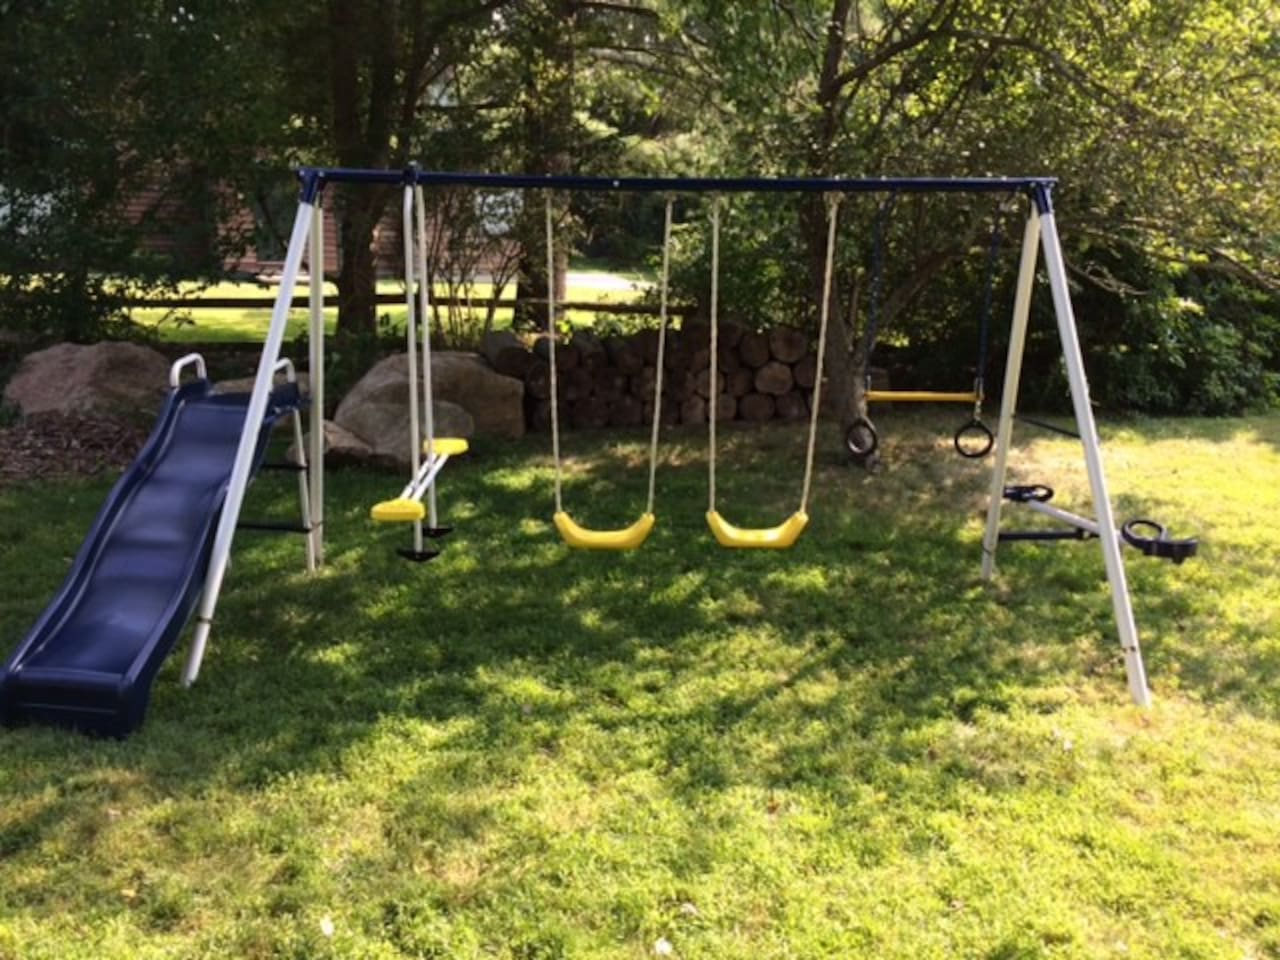 Swingset for smaller children. Note that it's best for children 10 and under.